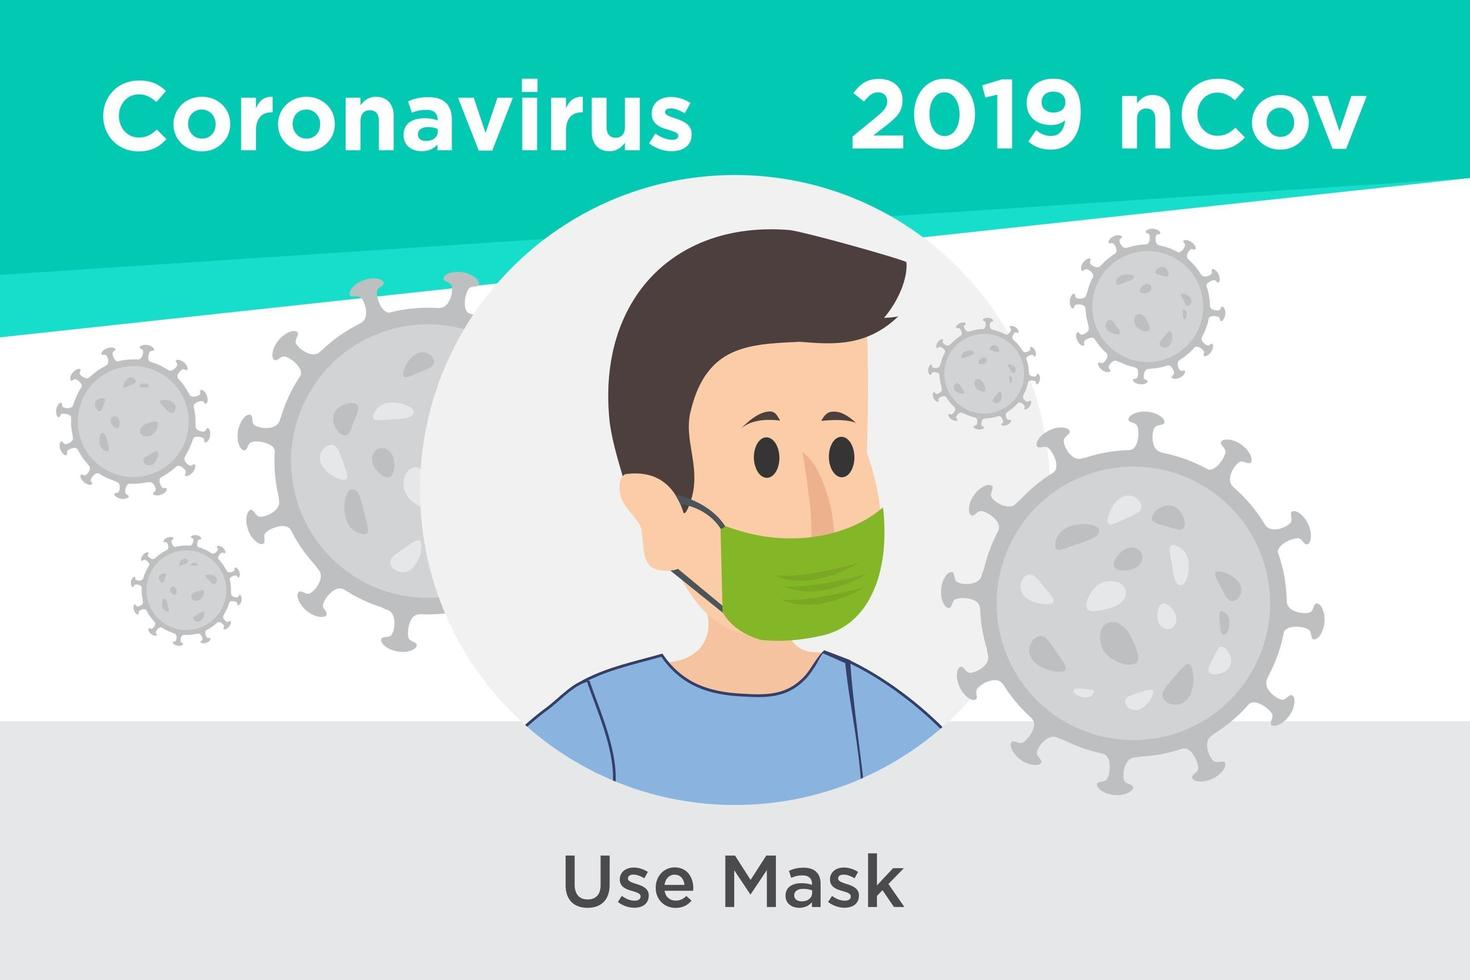 Use Mask to Prevent Coronavirus Reminder Poster vector